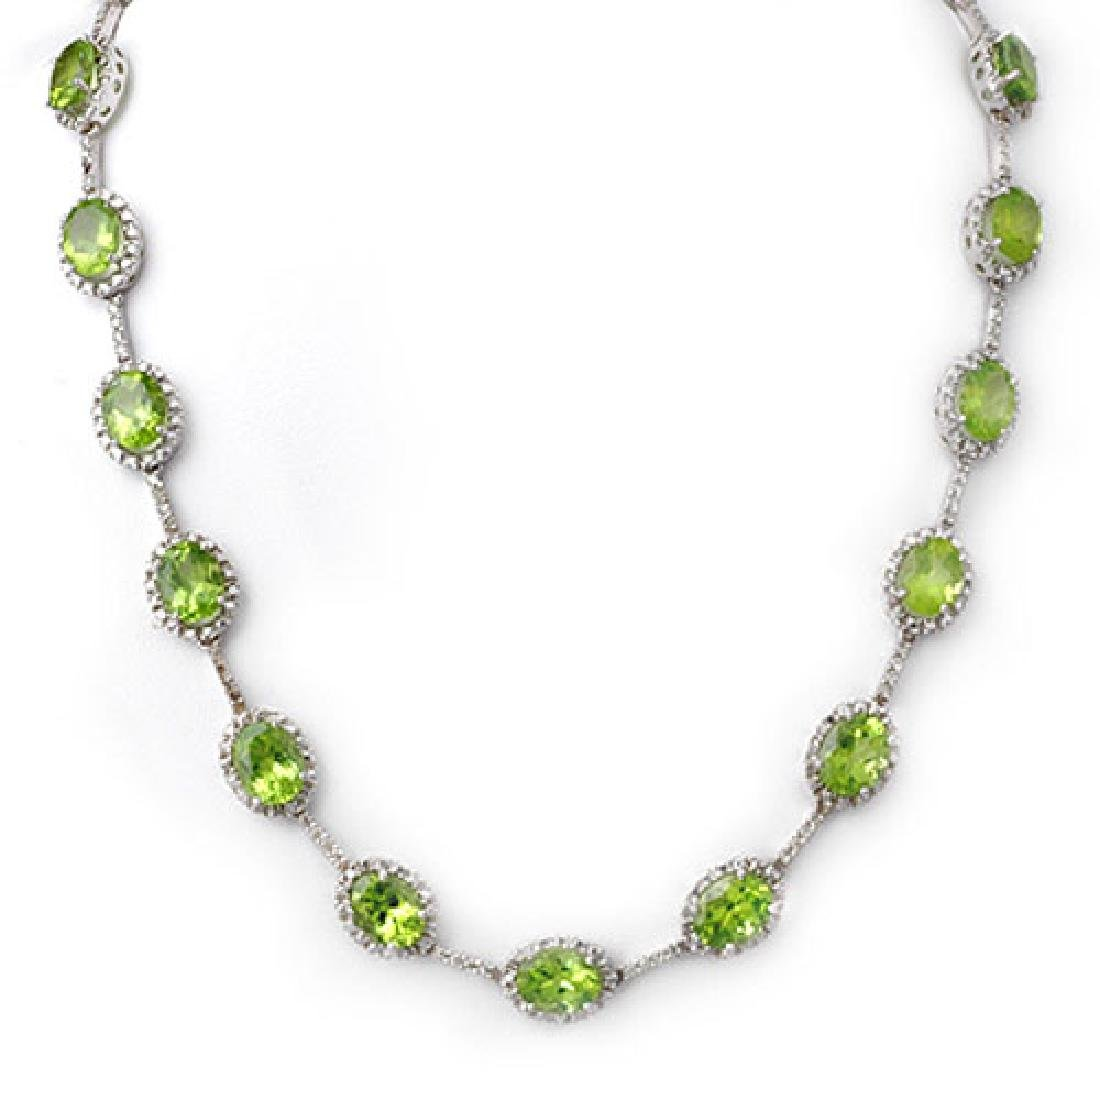 45.0 CTW Peridot & Diamond Necklace 14K White Gold